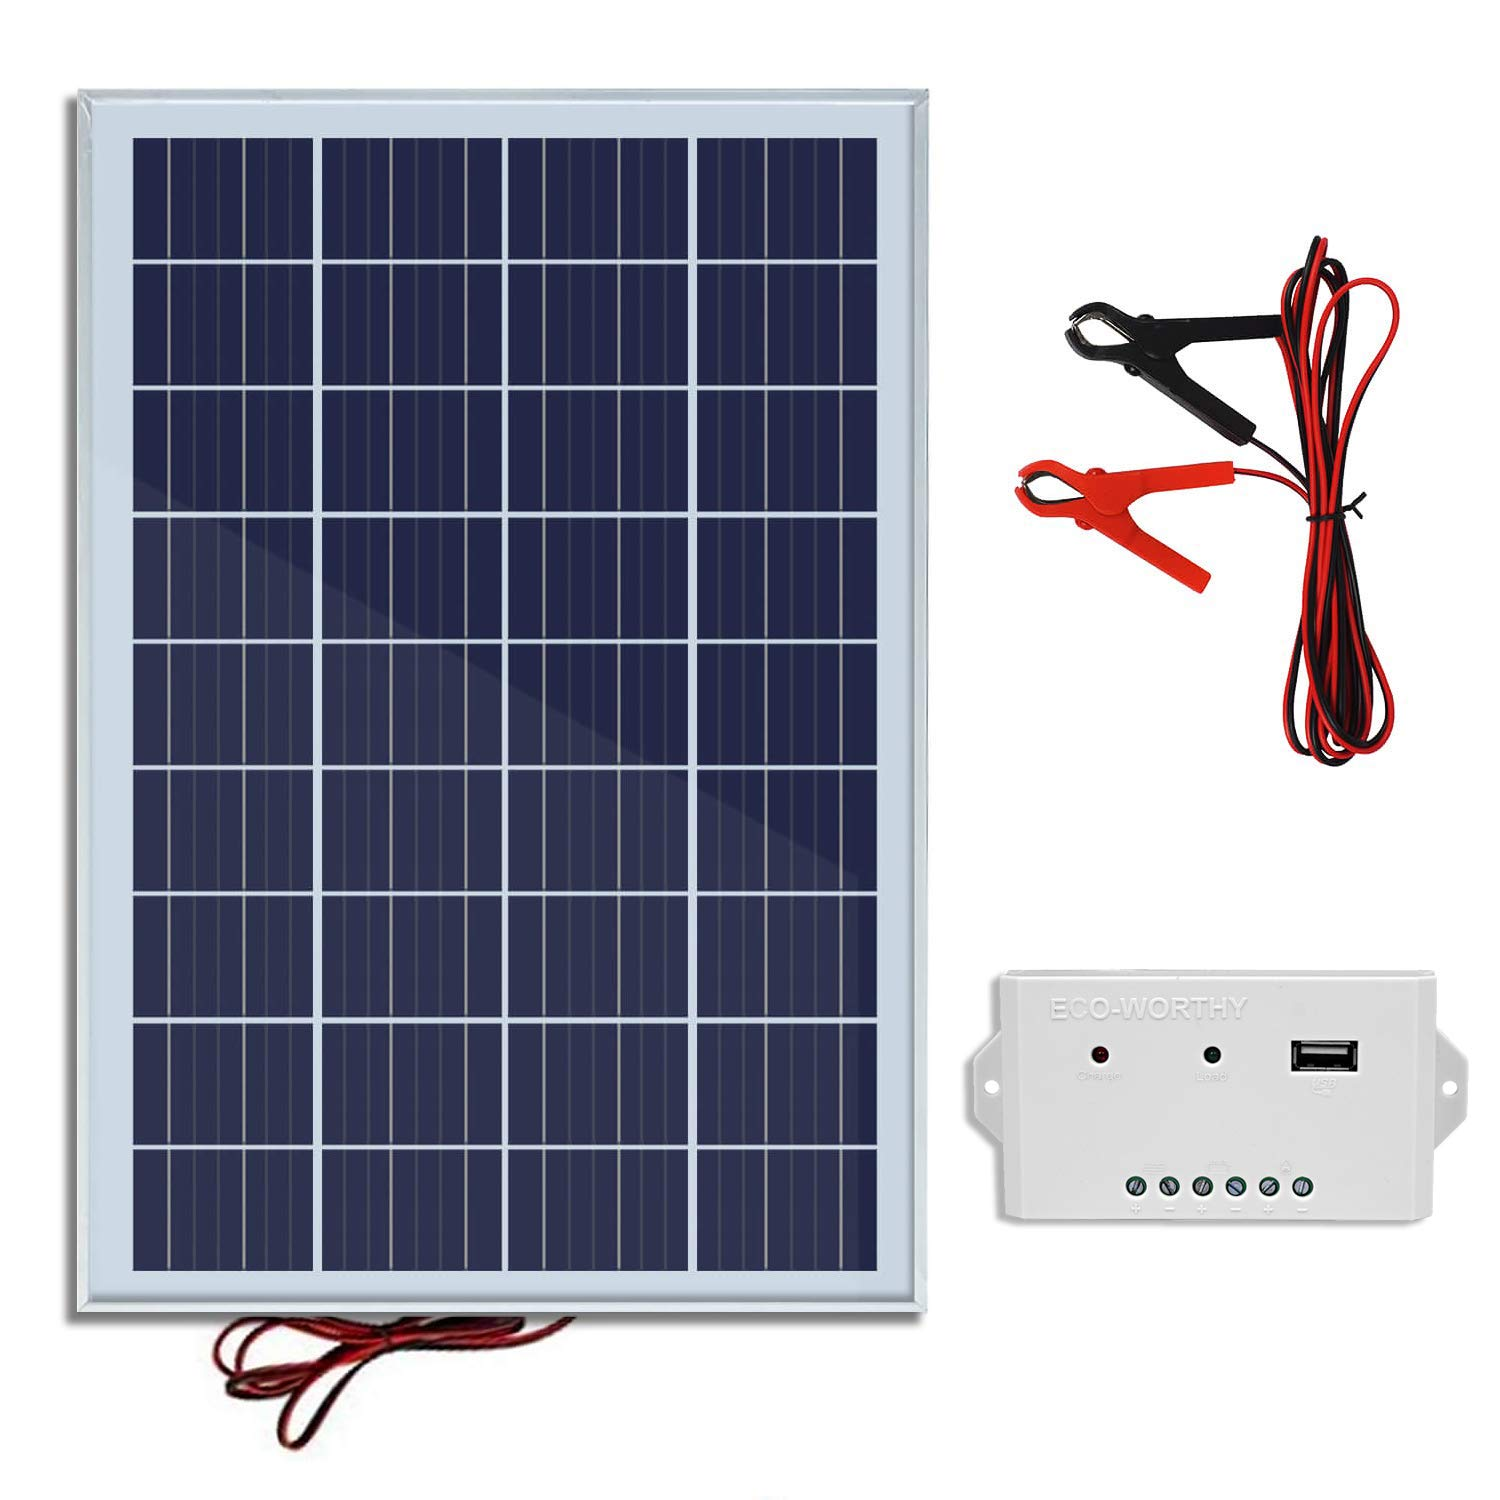 ECO-WORTHY 25W 12V IP65 Solar Panel Kit: 25W Off Grid Polycrystalline Solar Panel & Aluminum Battery Clips & 3A Charge Controller by ECO-WORTHY